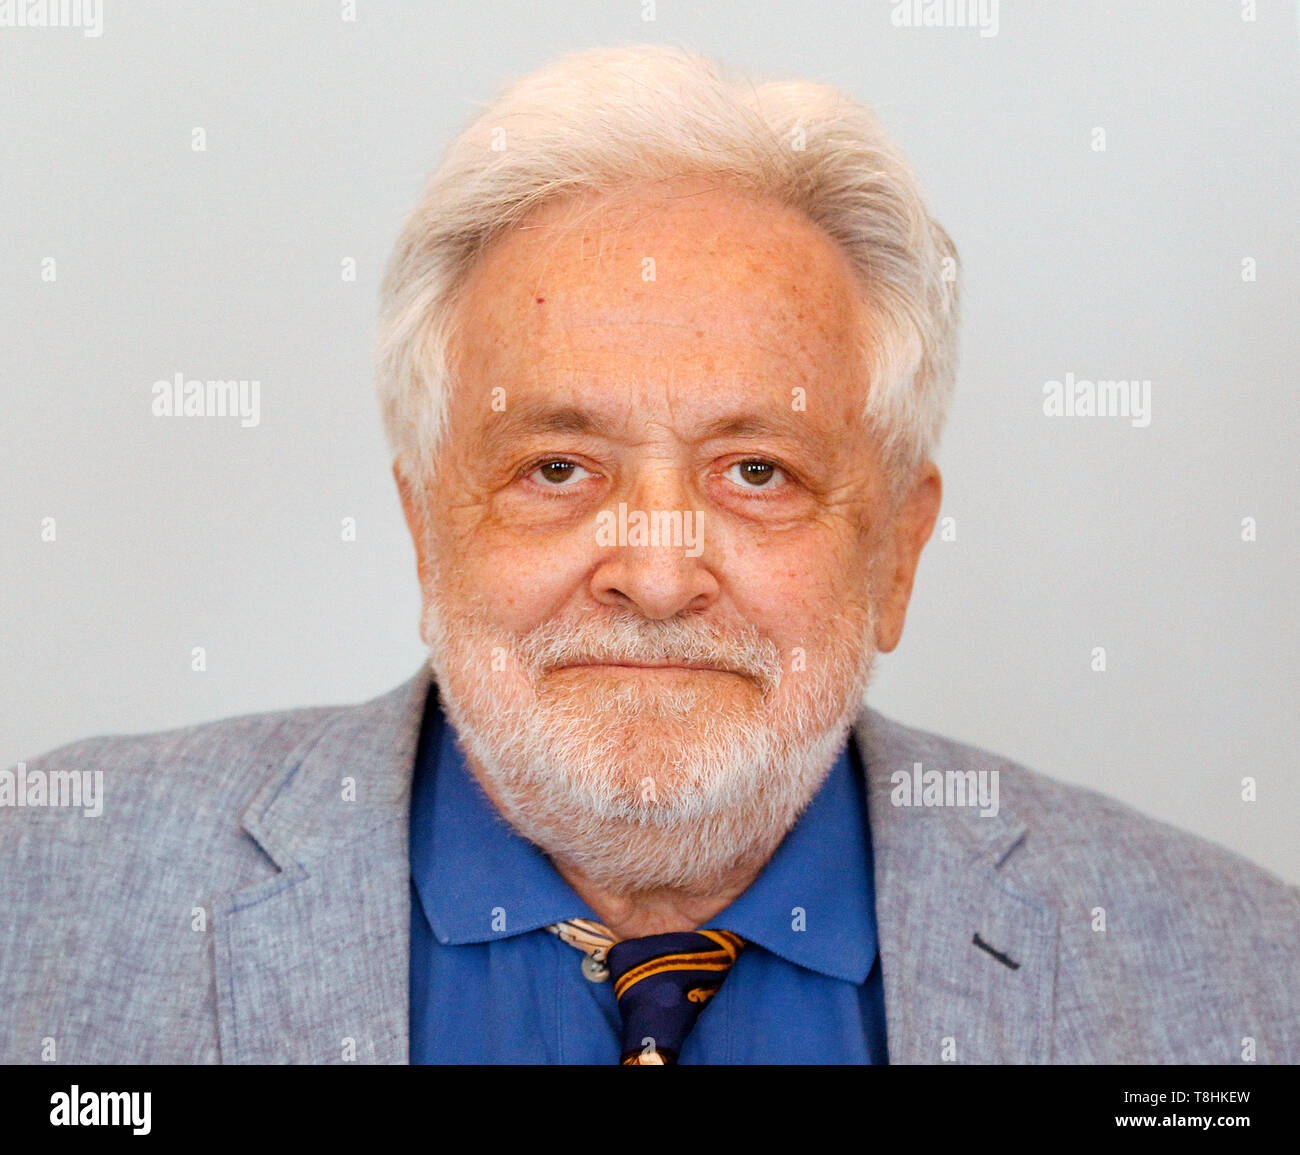 Duisburg, Germany. 13th May, 2019. The publicist Henryk M. Broder, accused of insult. In September 2016, at the request of the weekly newspaper 'Junge Freiheit', Broder had said about the Islamic scholar Lamya Kaddor that she had 'a gossip on her hands'. Broder appealed against an order of punishment, which is why the trial is now at trial. Credit: Roland Weihrauch/dpa/Alamy Live News - Stock Image